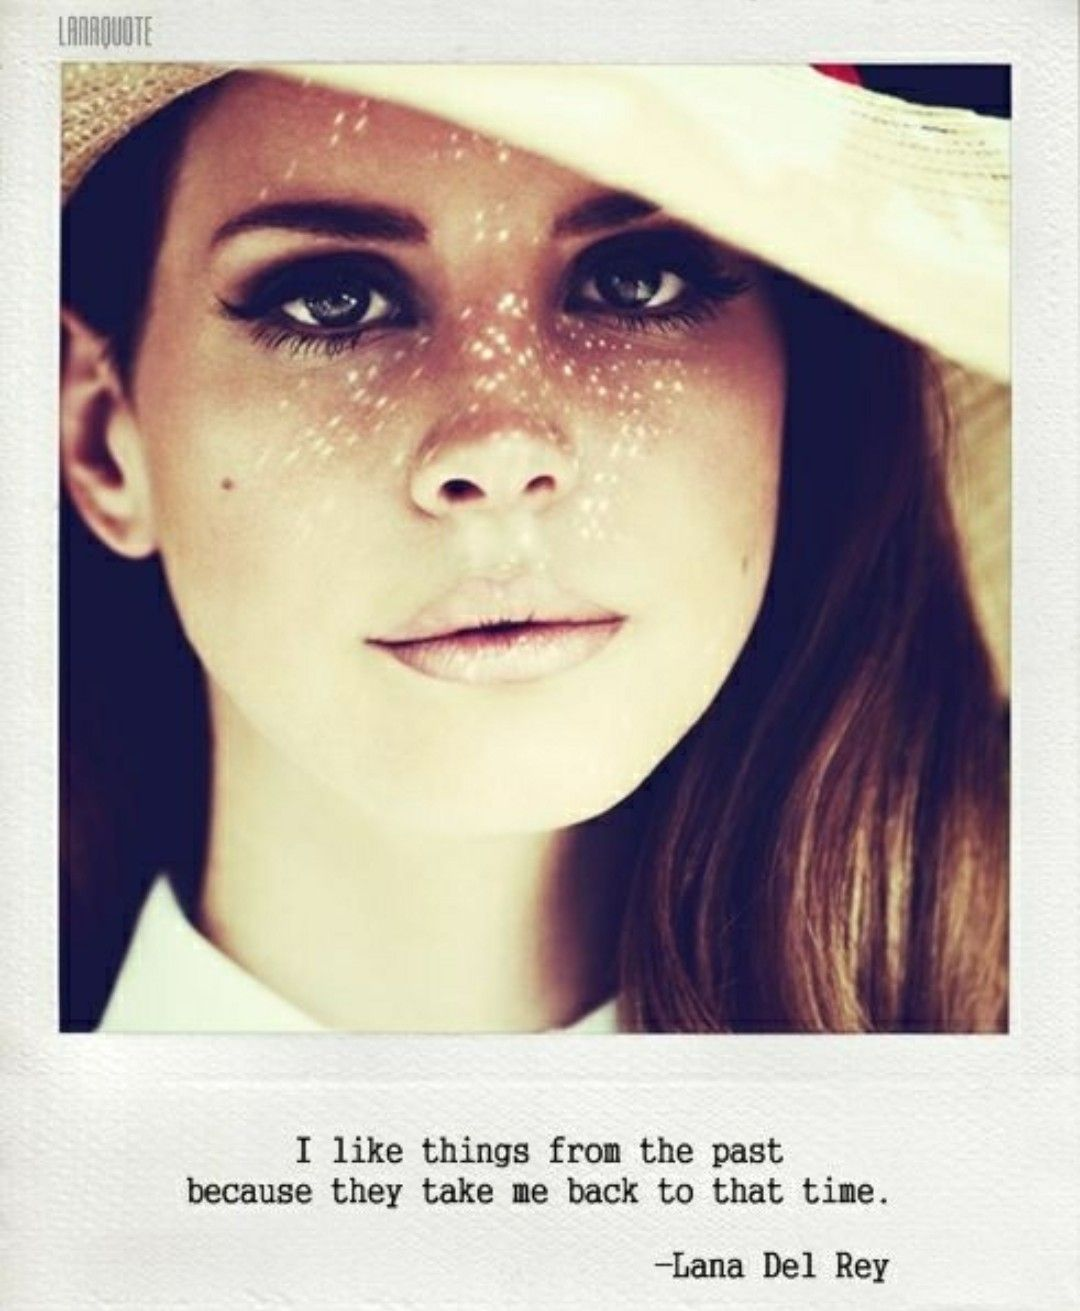 Pin by Ketaki k on Lana Del Rey Quotes and lyrics in 2019 ...